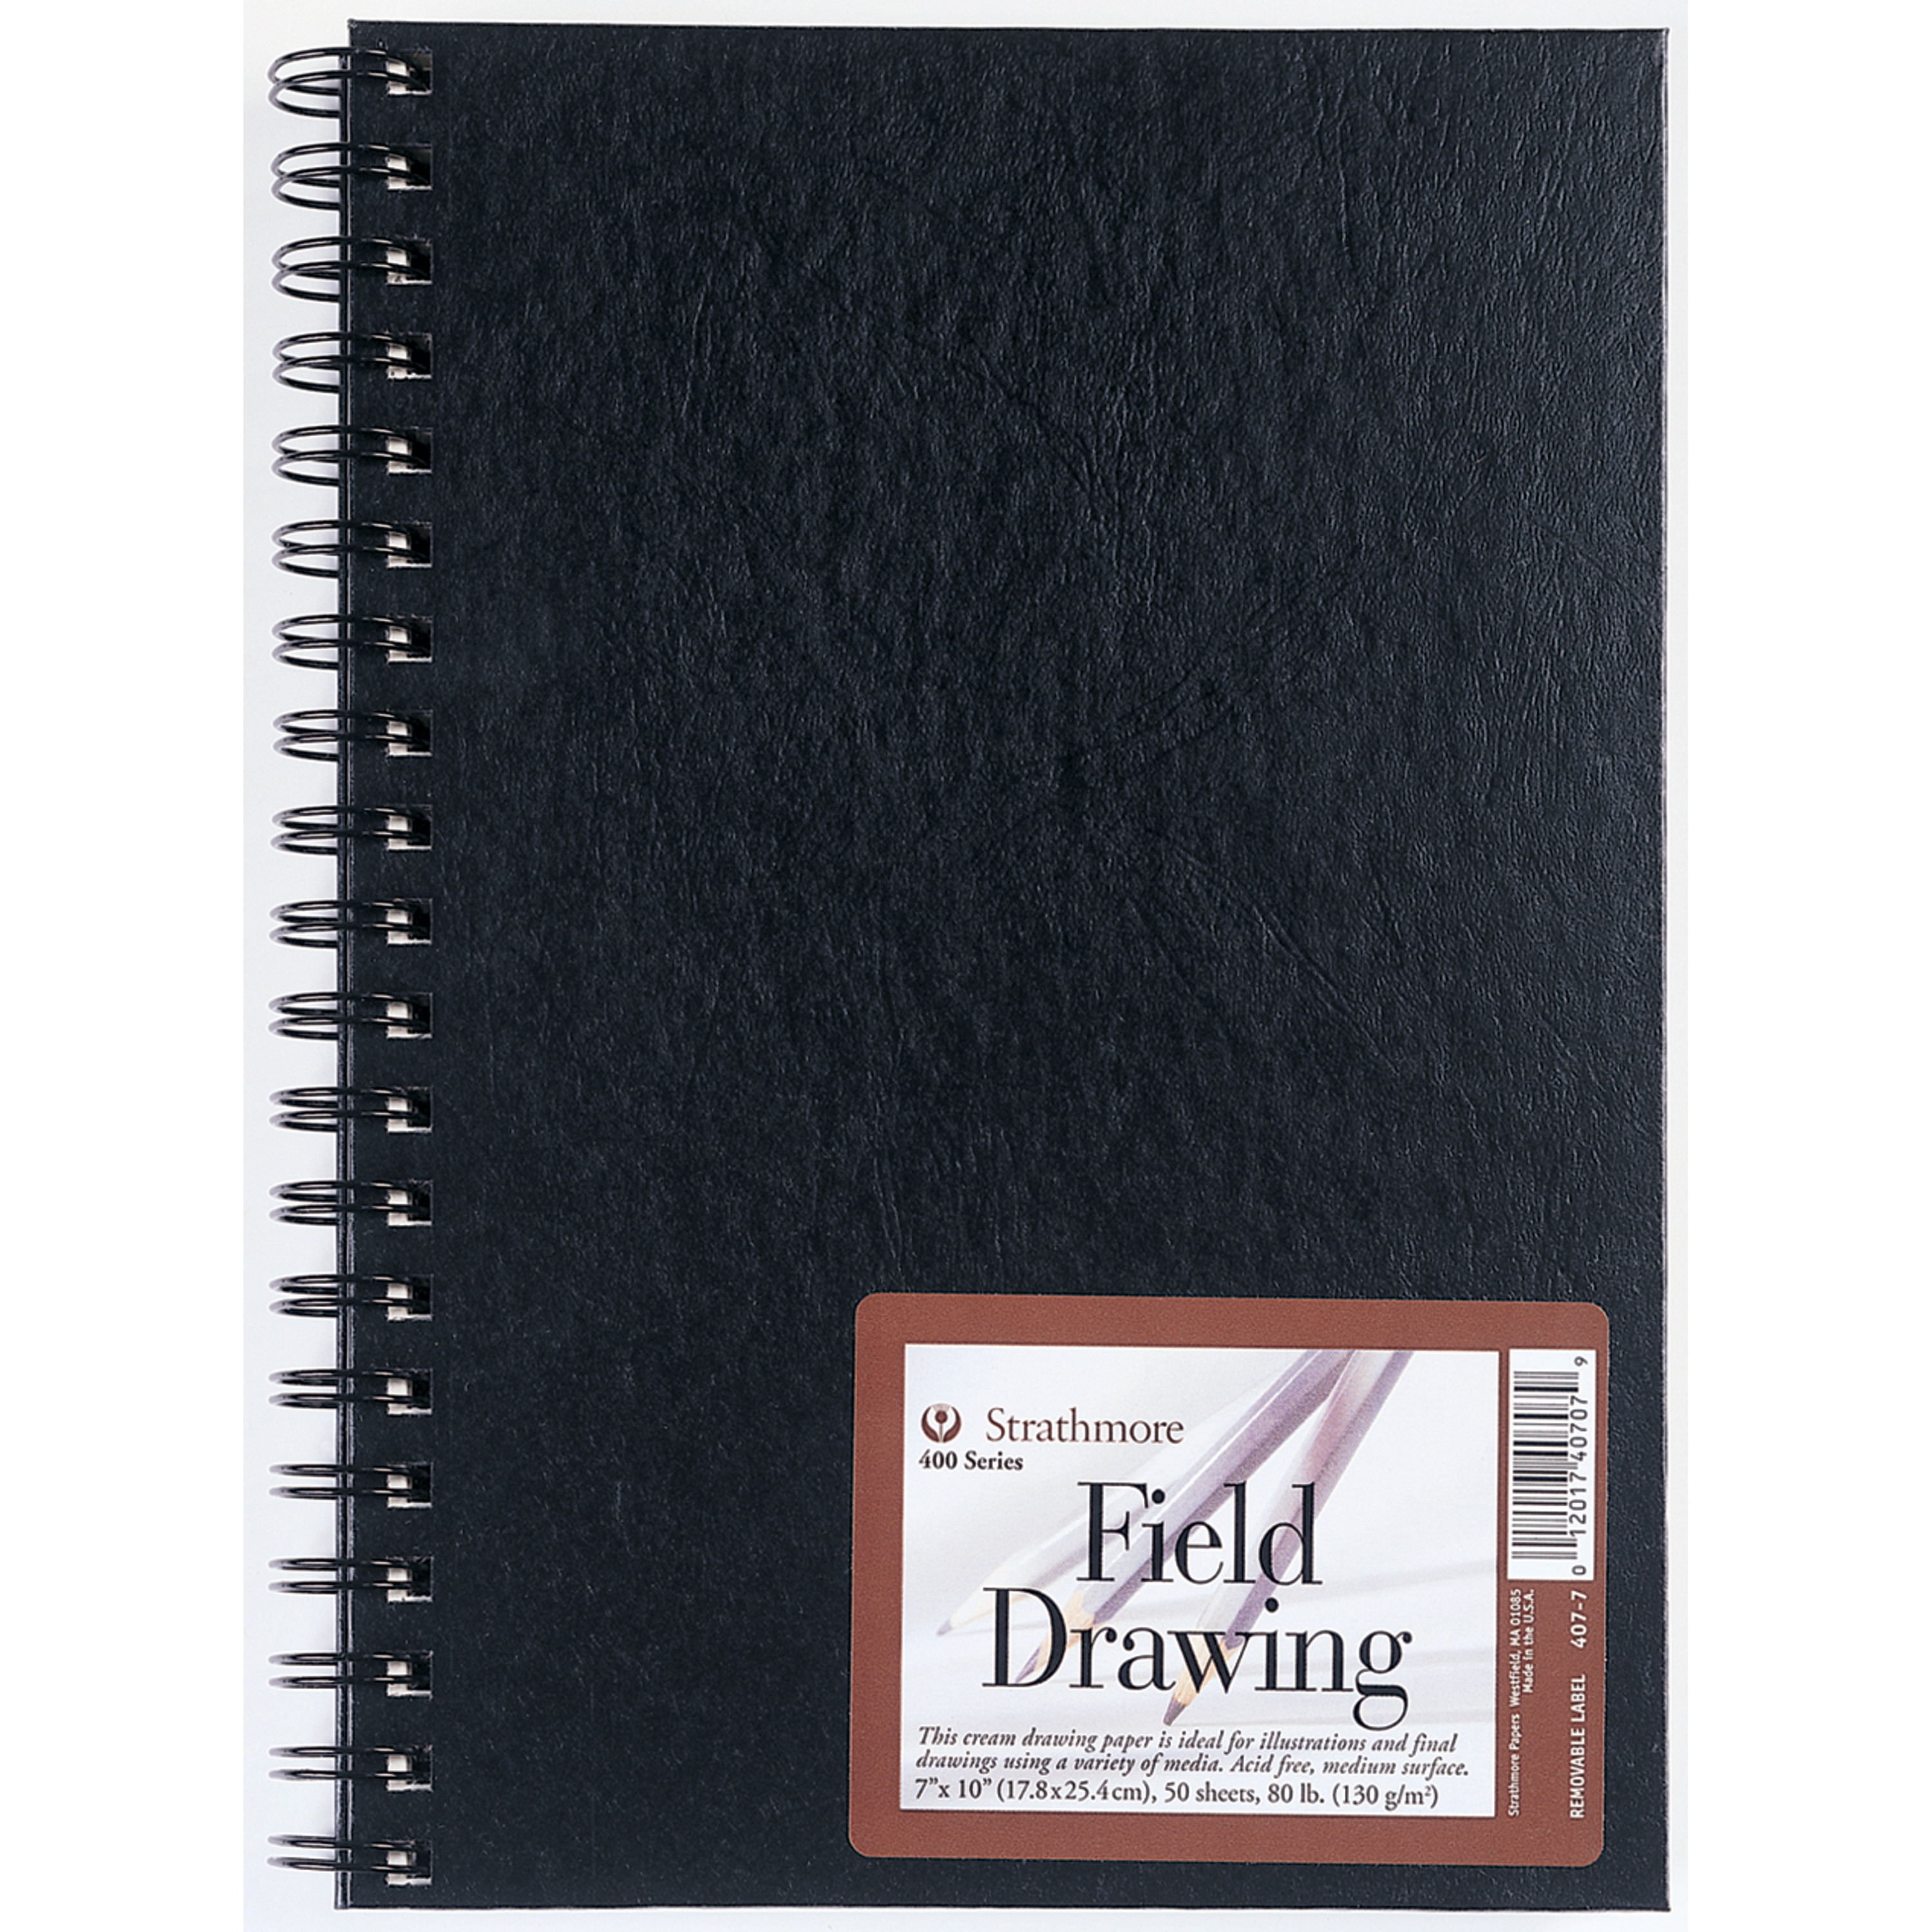 Strathmore Hardcover Field Drawing Sketchbook, Cream, 7in x 10in